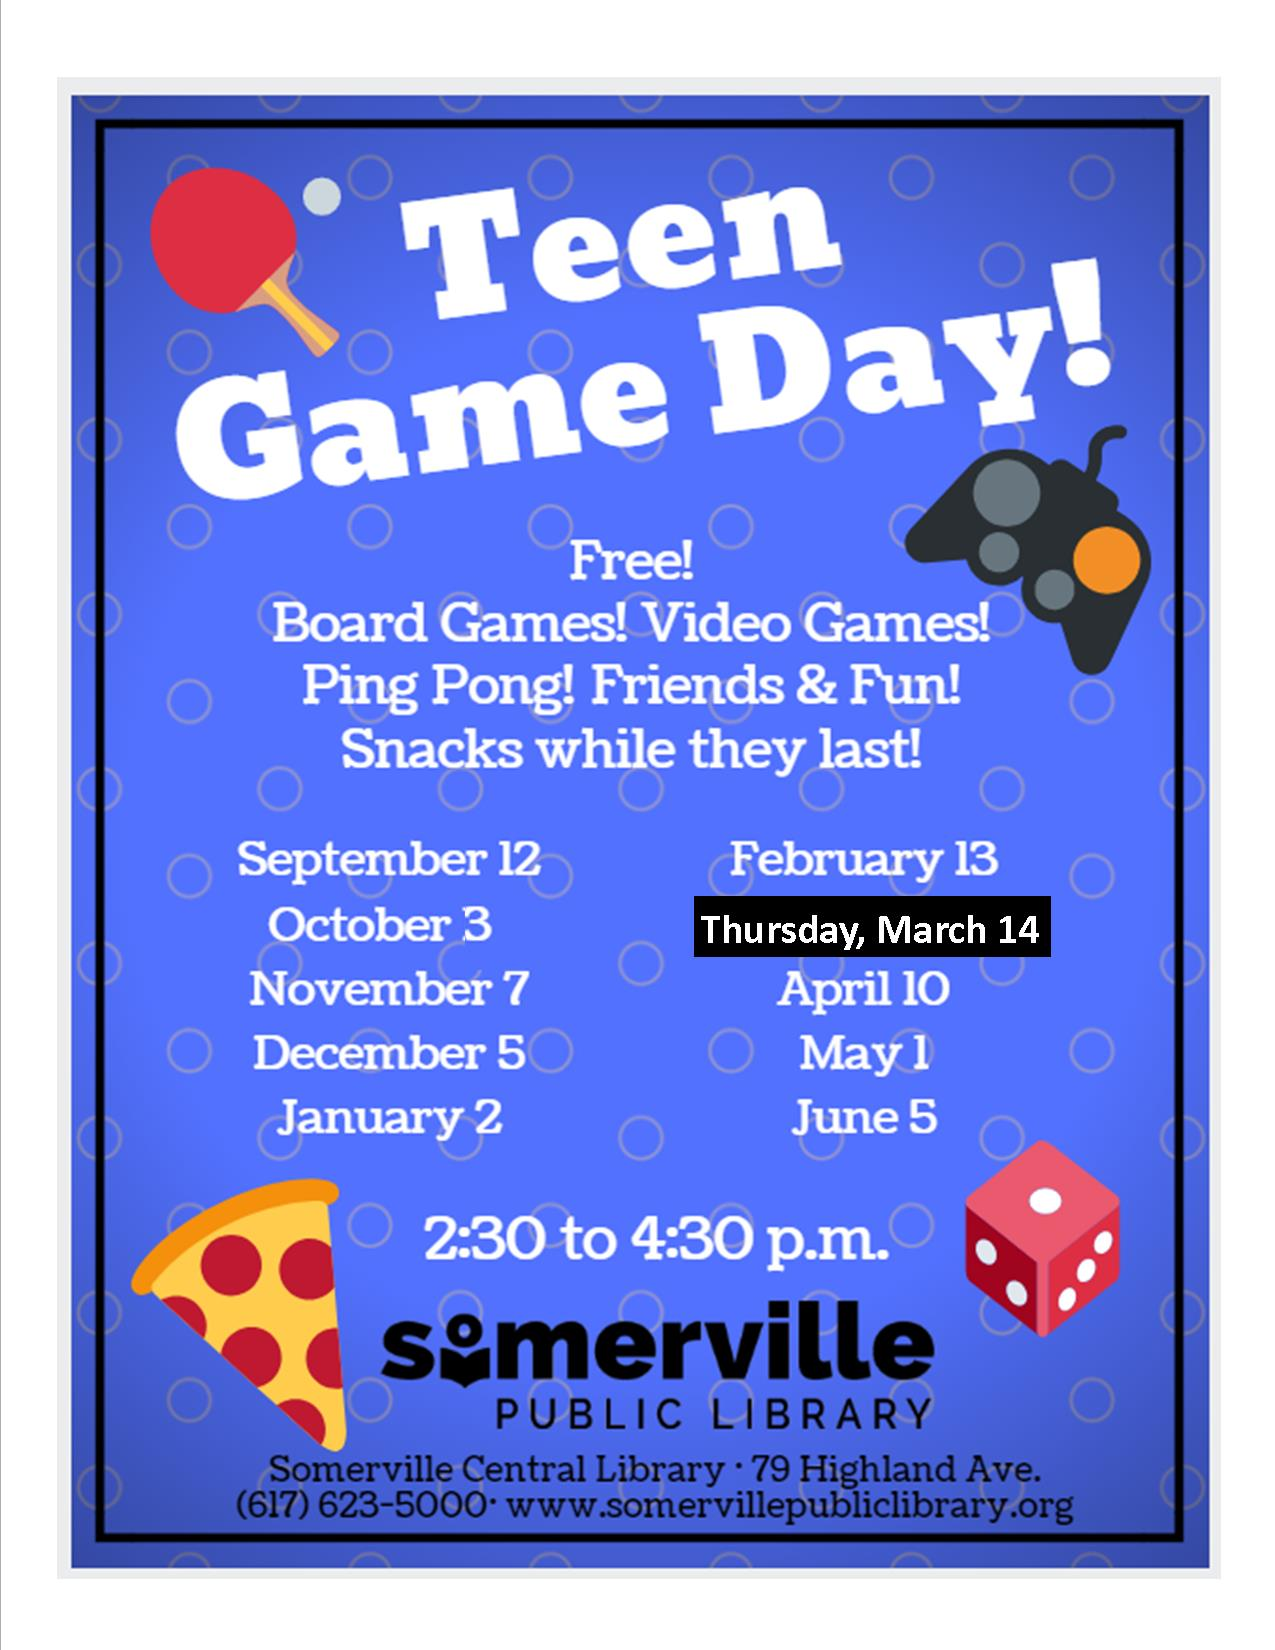 Teen Game Day flyer